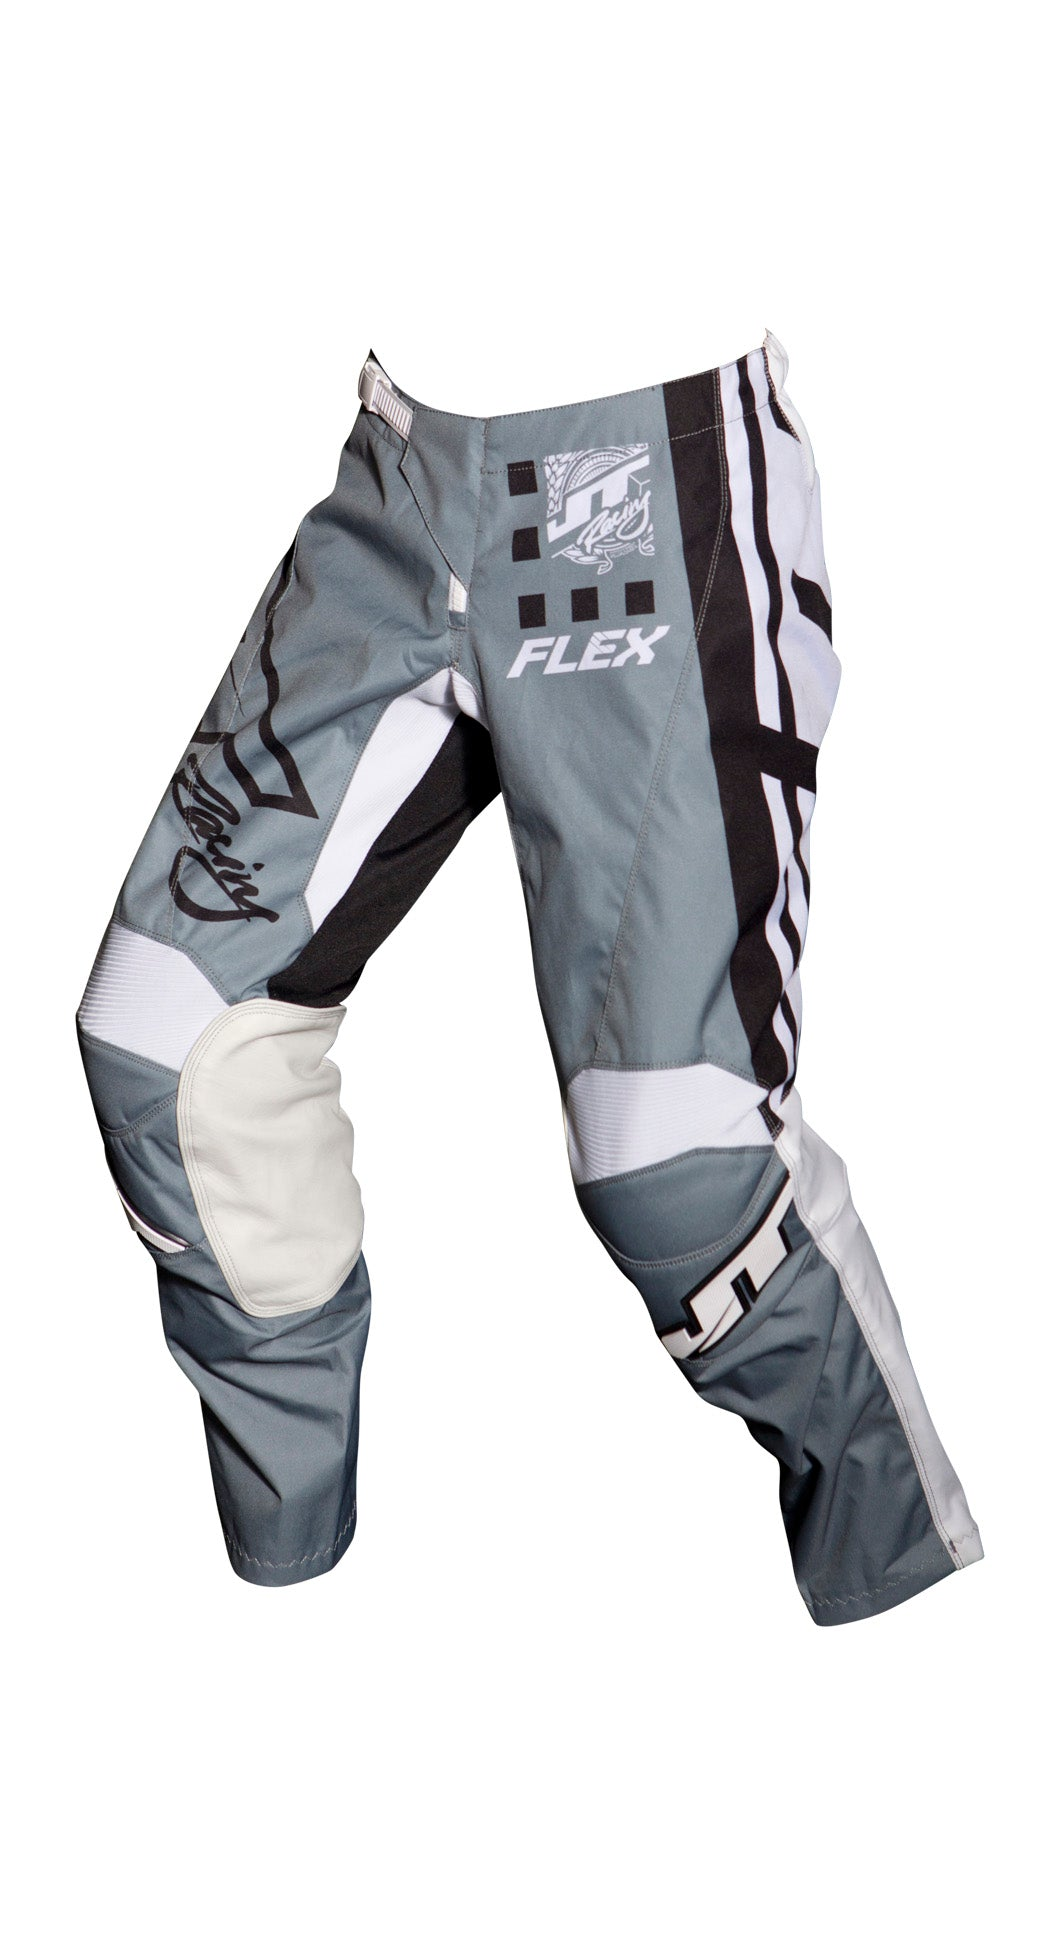 JT RACING USA-2018 Flex ExBox Pants, Grey/Black